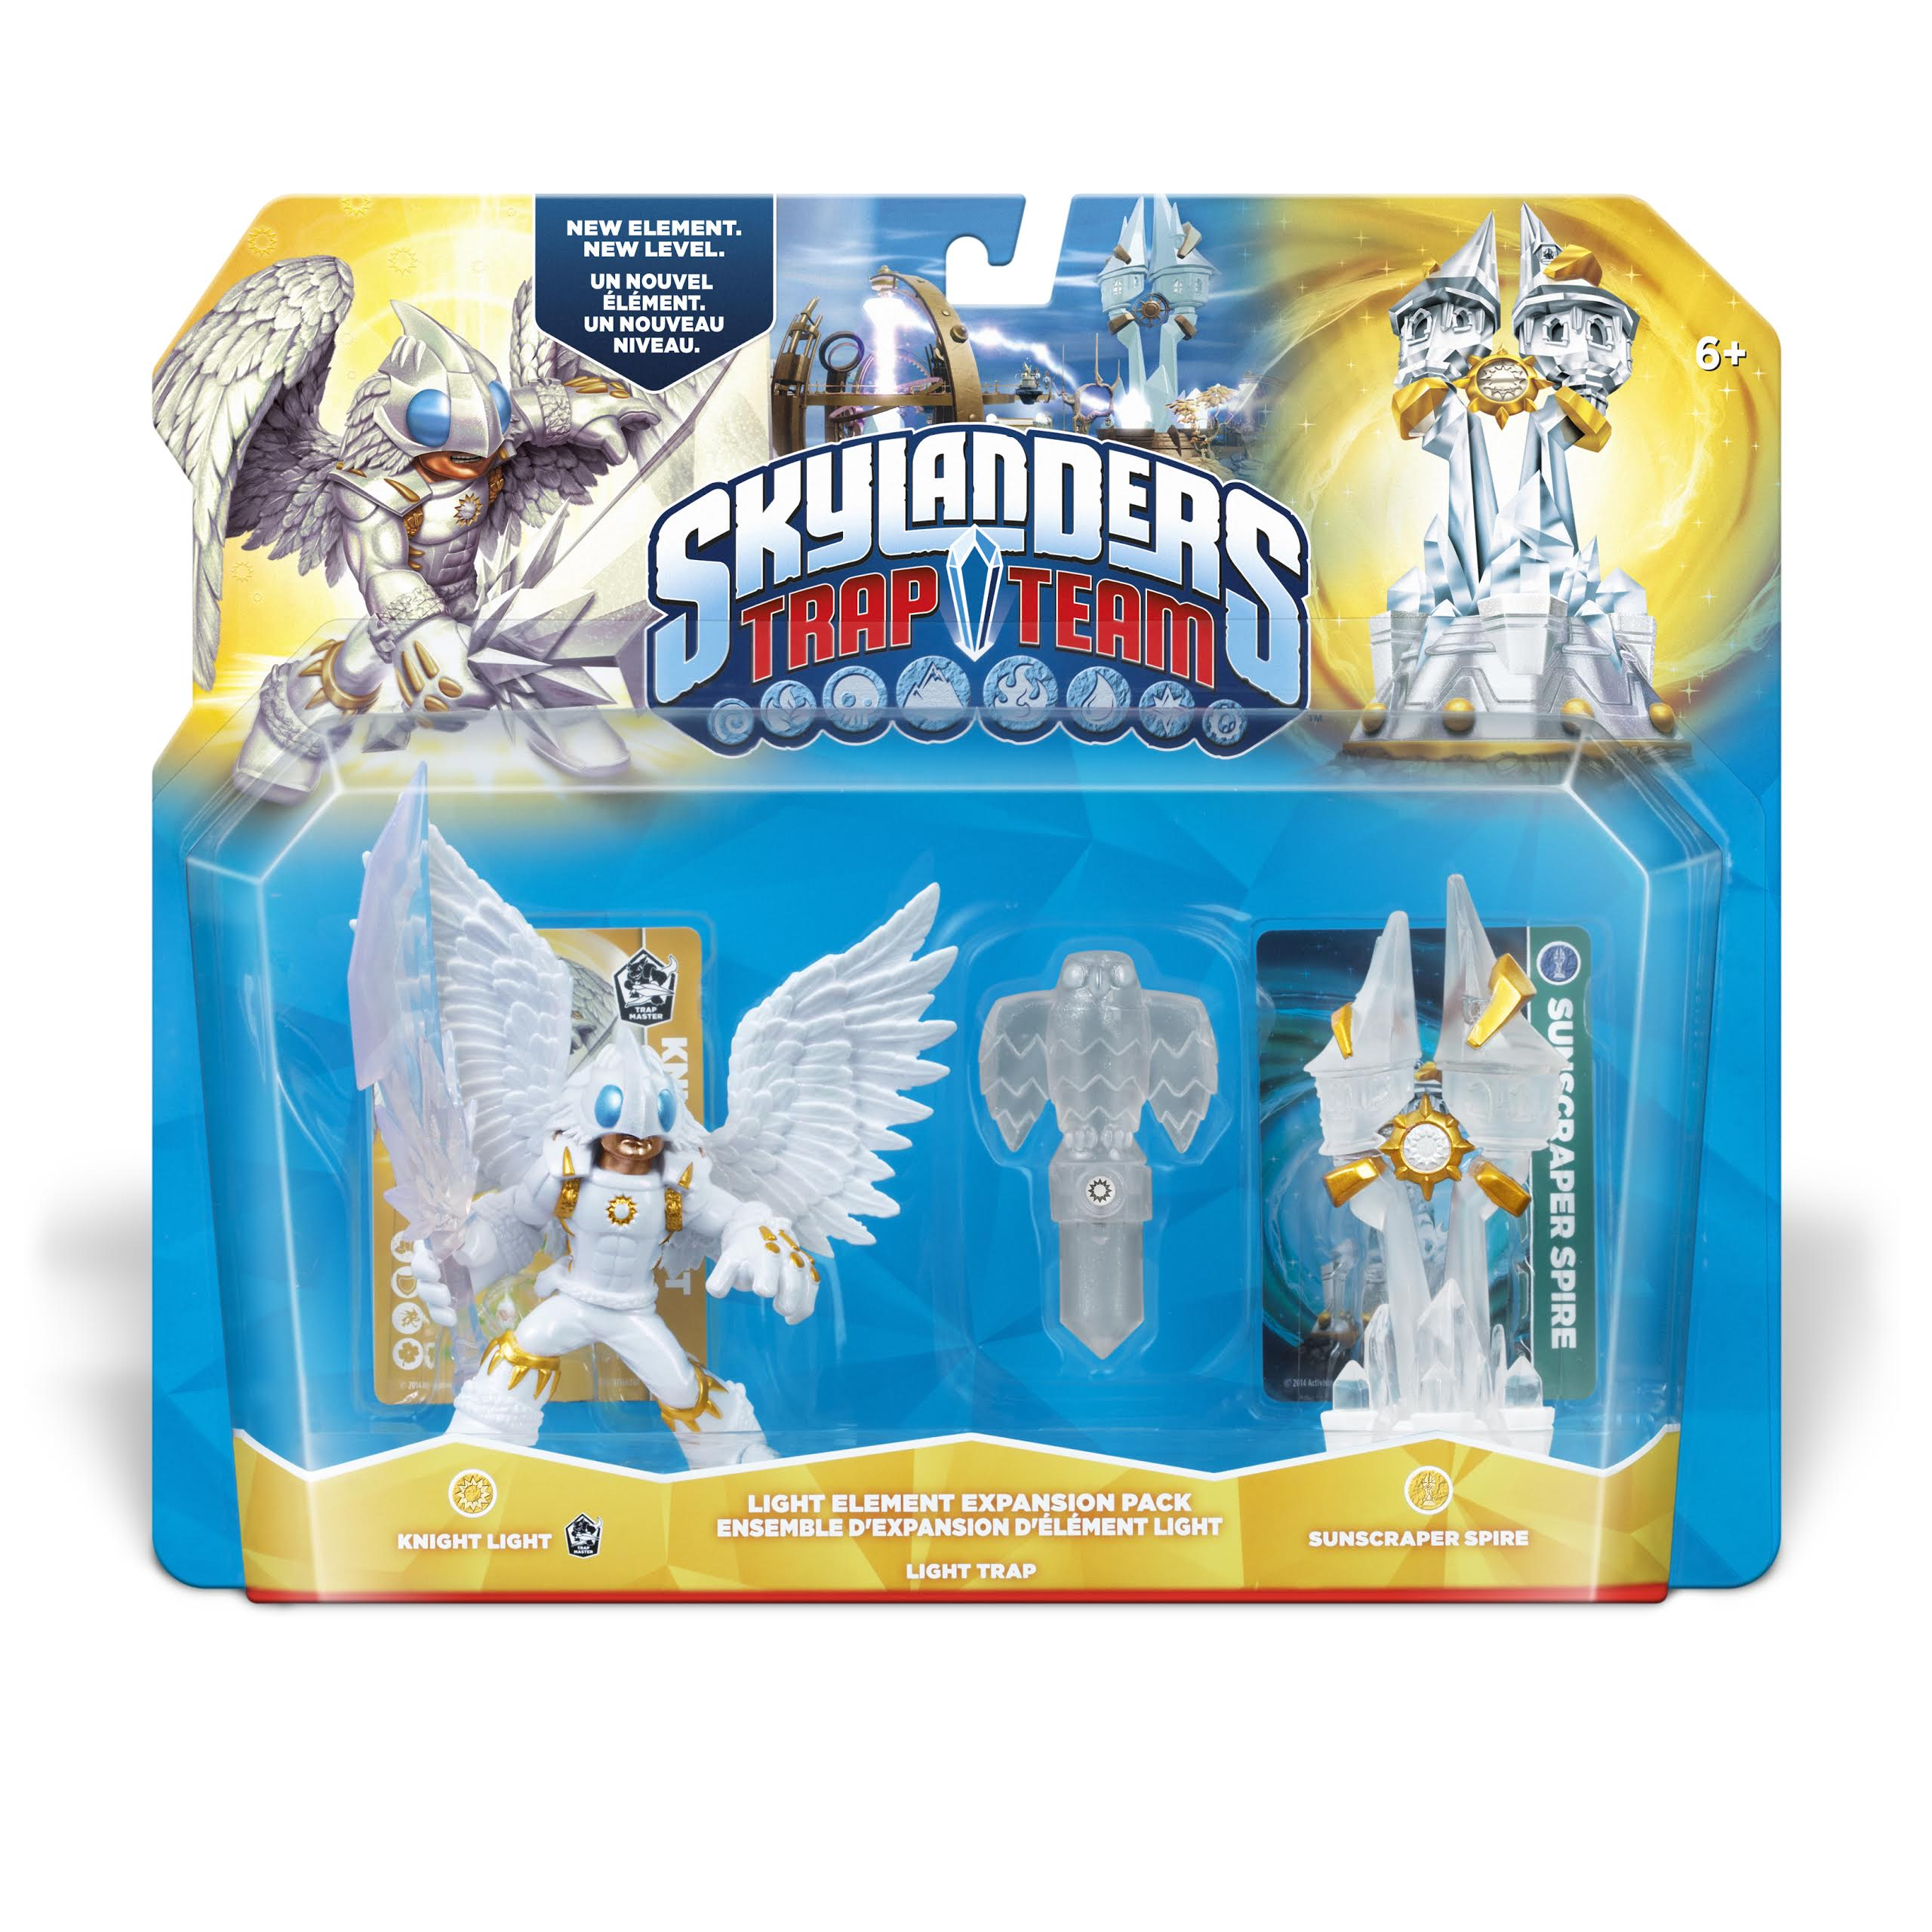 Skylanders Light and Dark elements revealed